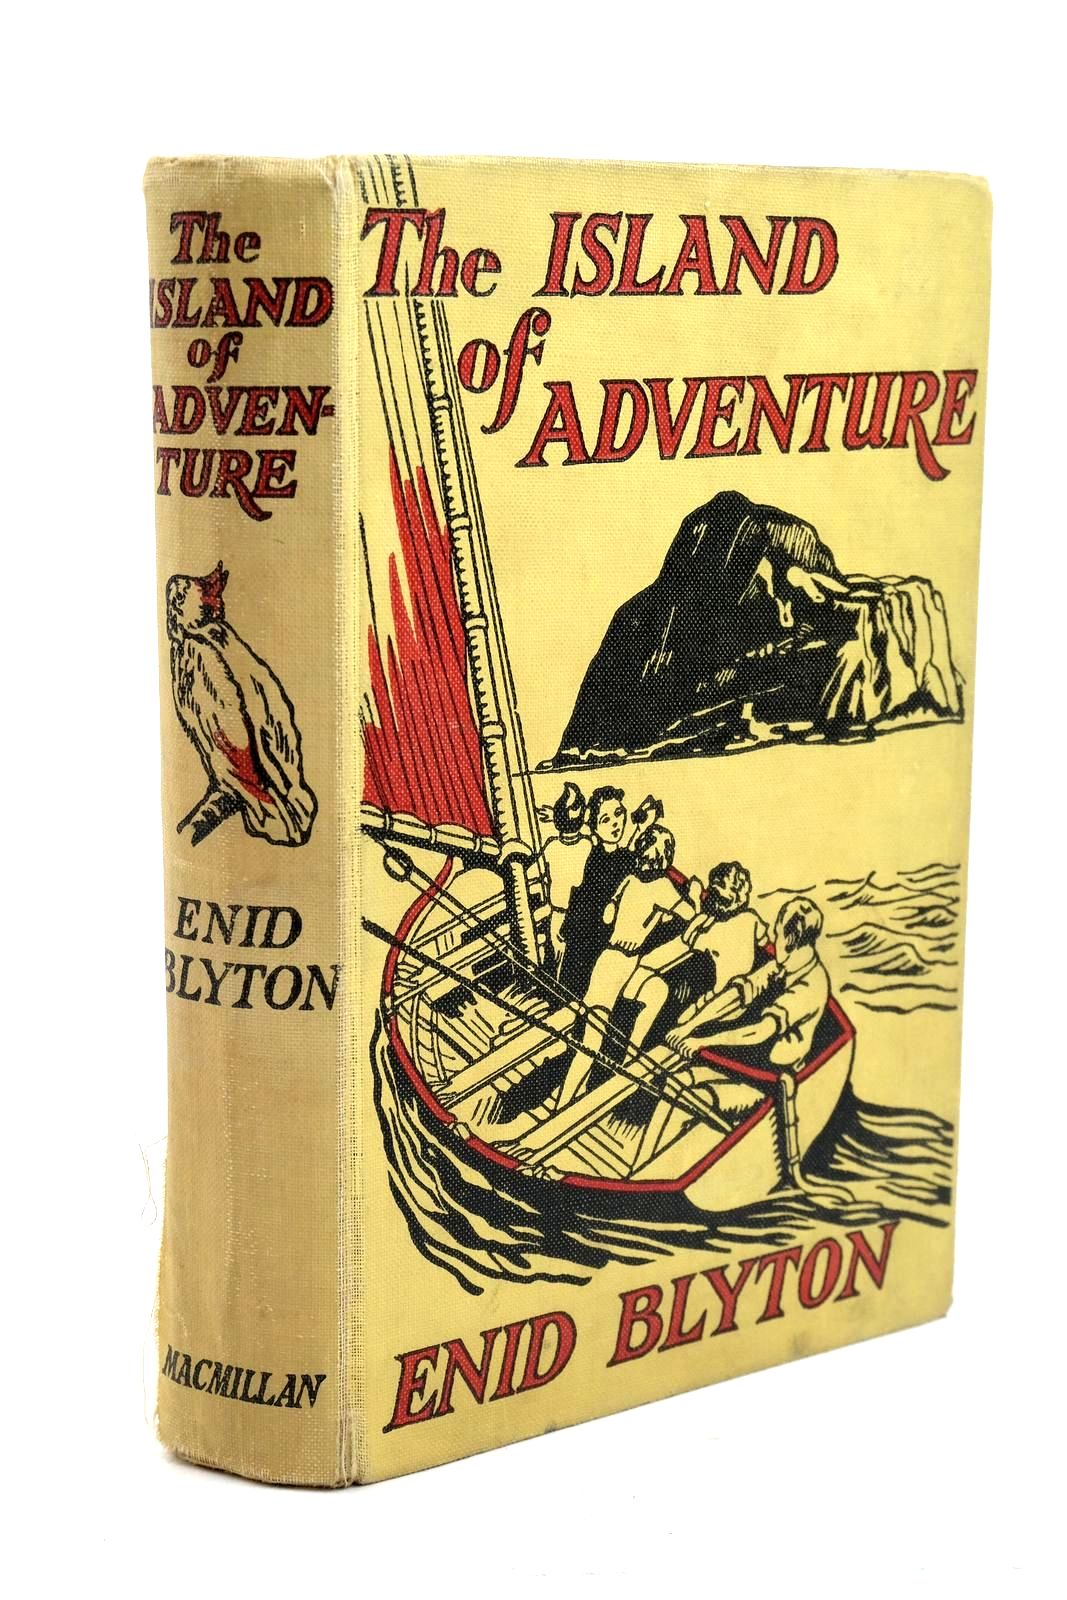 Photo of THE ISLAND OF ADVENTURE written by Blyton, Enid illustrated by Tresilian, Stuart published by Macmillan & Co. Ltd. (STOCK CODE: 1320742)  for sale by Stella & Rose's Books